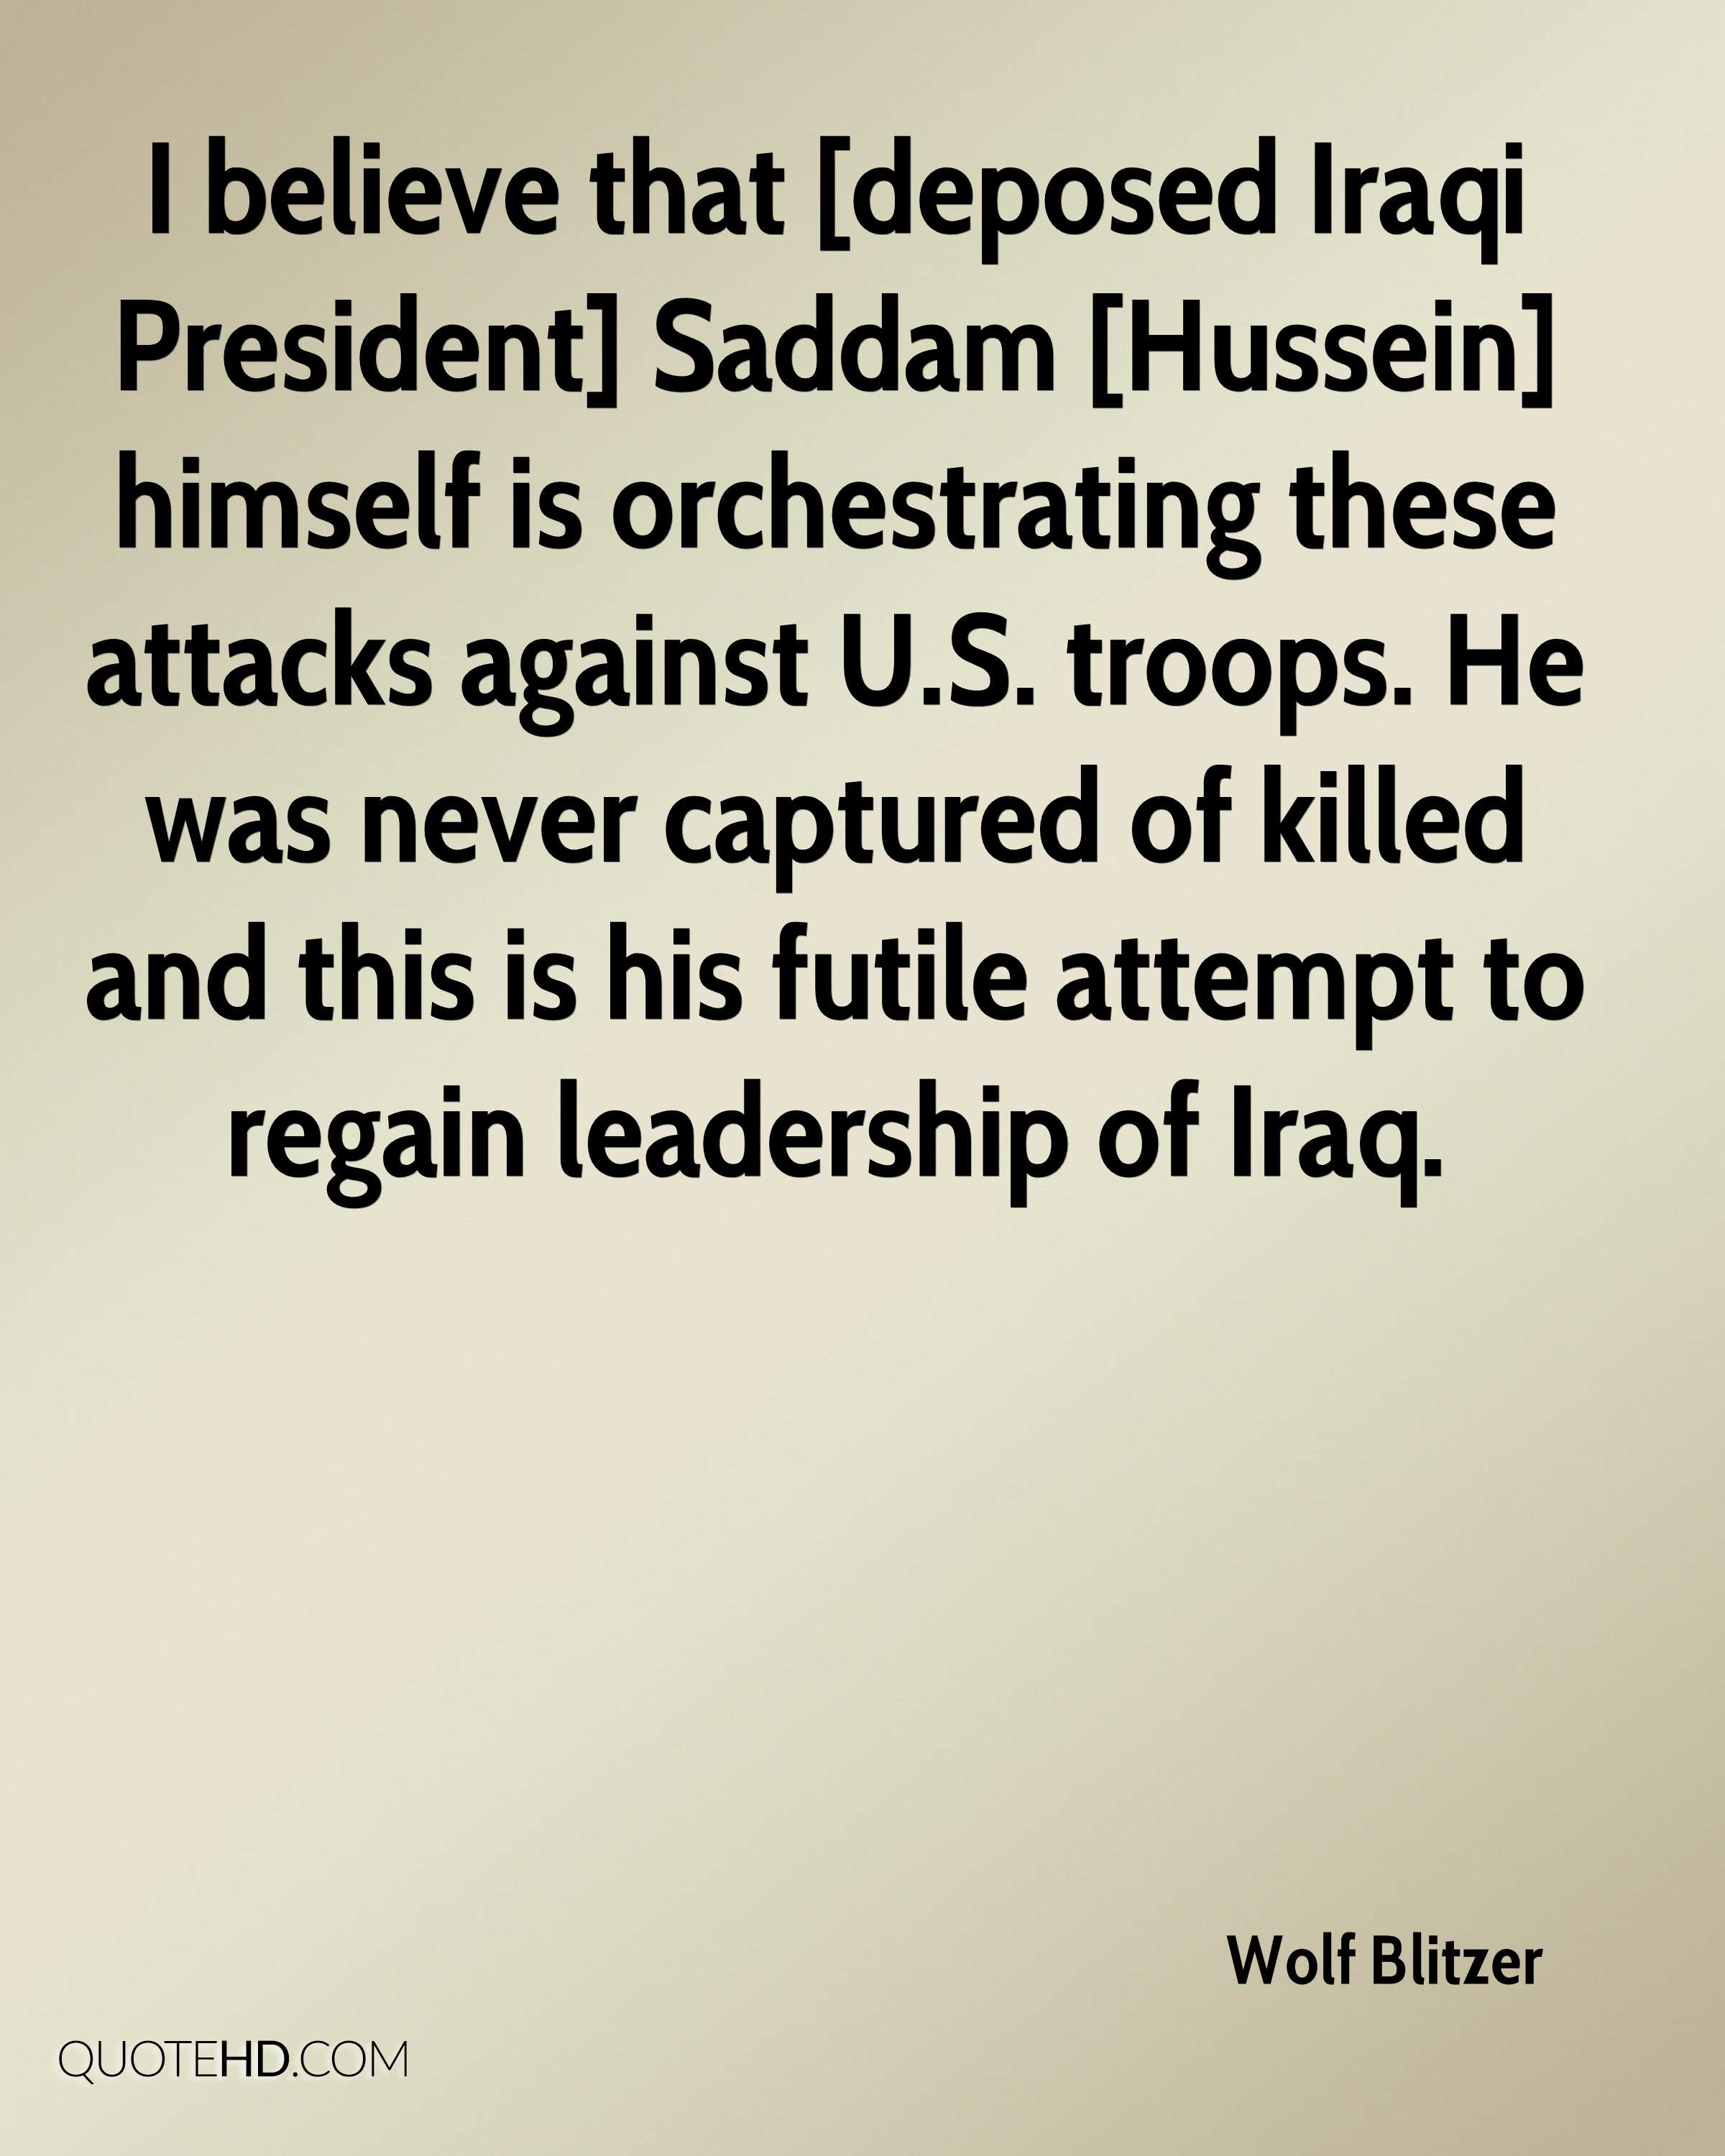 I believe that [deposed Iraqi President] Saddam [Hussein] himself is orchestrating these attacks against U.S. troops. He was never captured of killed and this is his futile attempt to regain leadership of Iraq.